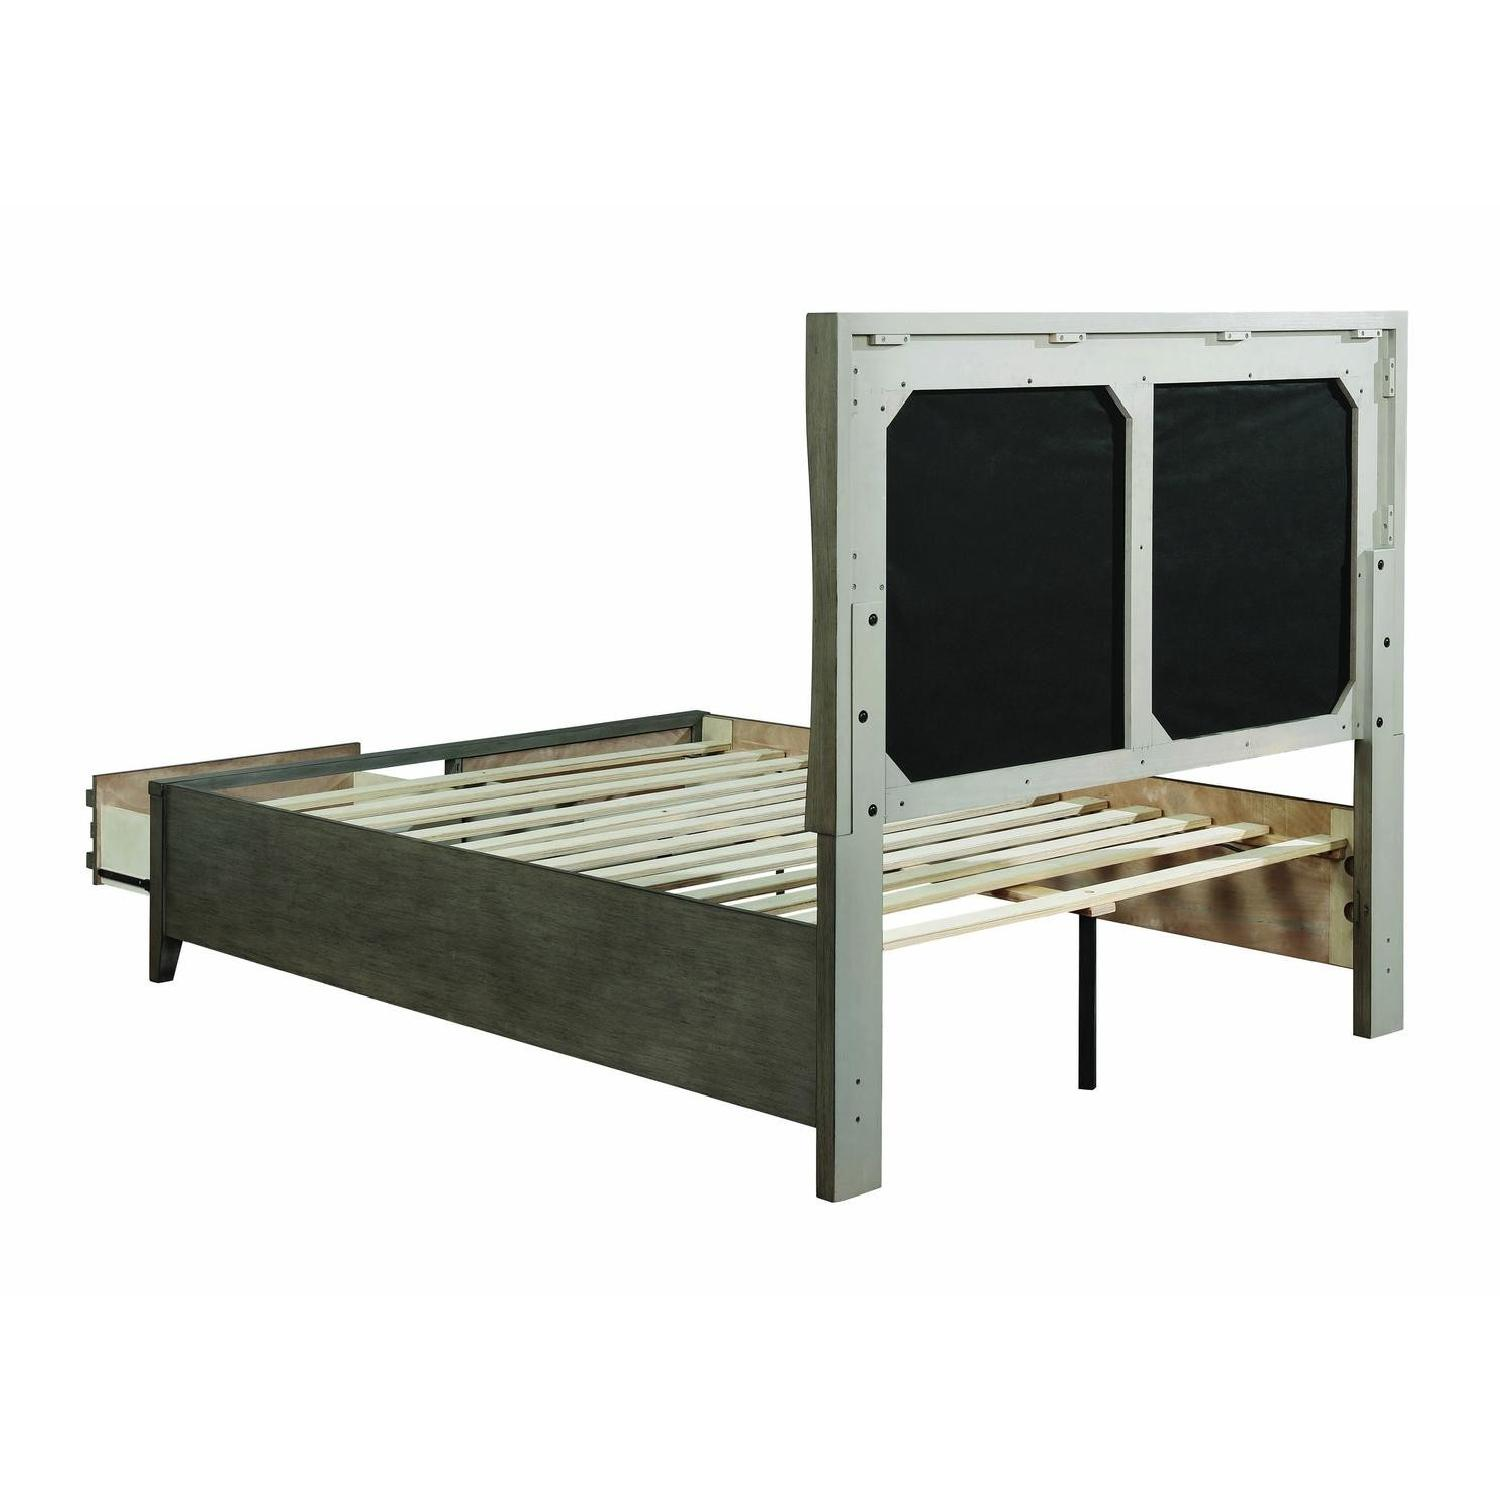 King Bed in Dark Taupe w/ 2 Storage Drawers - image-3